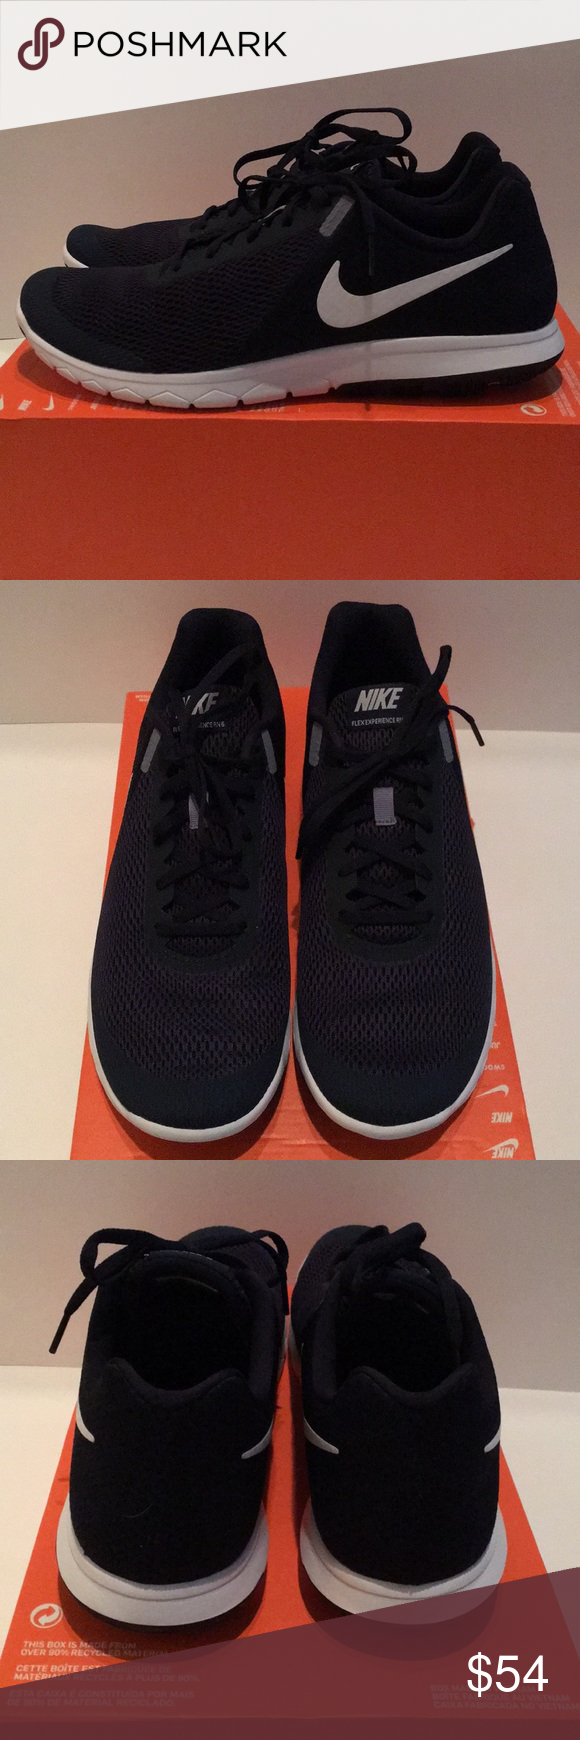 850d322dcbf8 NEW Nike Running Shoes Sz. 12.5 Brand new men s navy and white Nike Flex  Experience RN 6 Running Shoes size 12.5! Nike Shoes Athletic Shoes